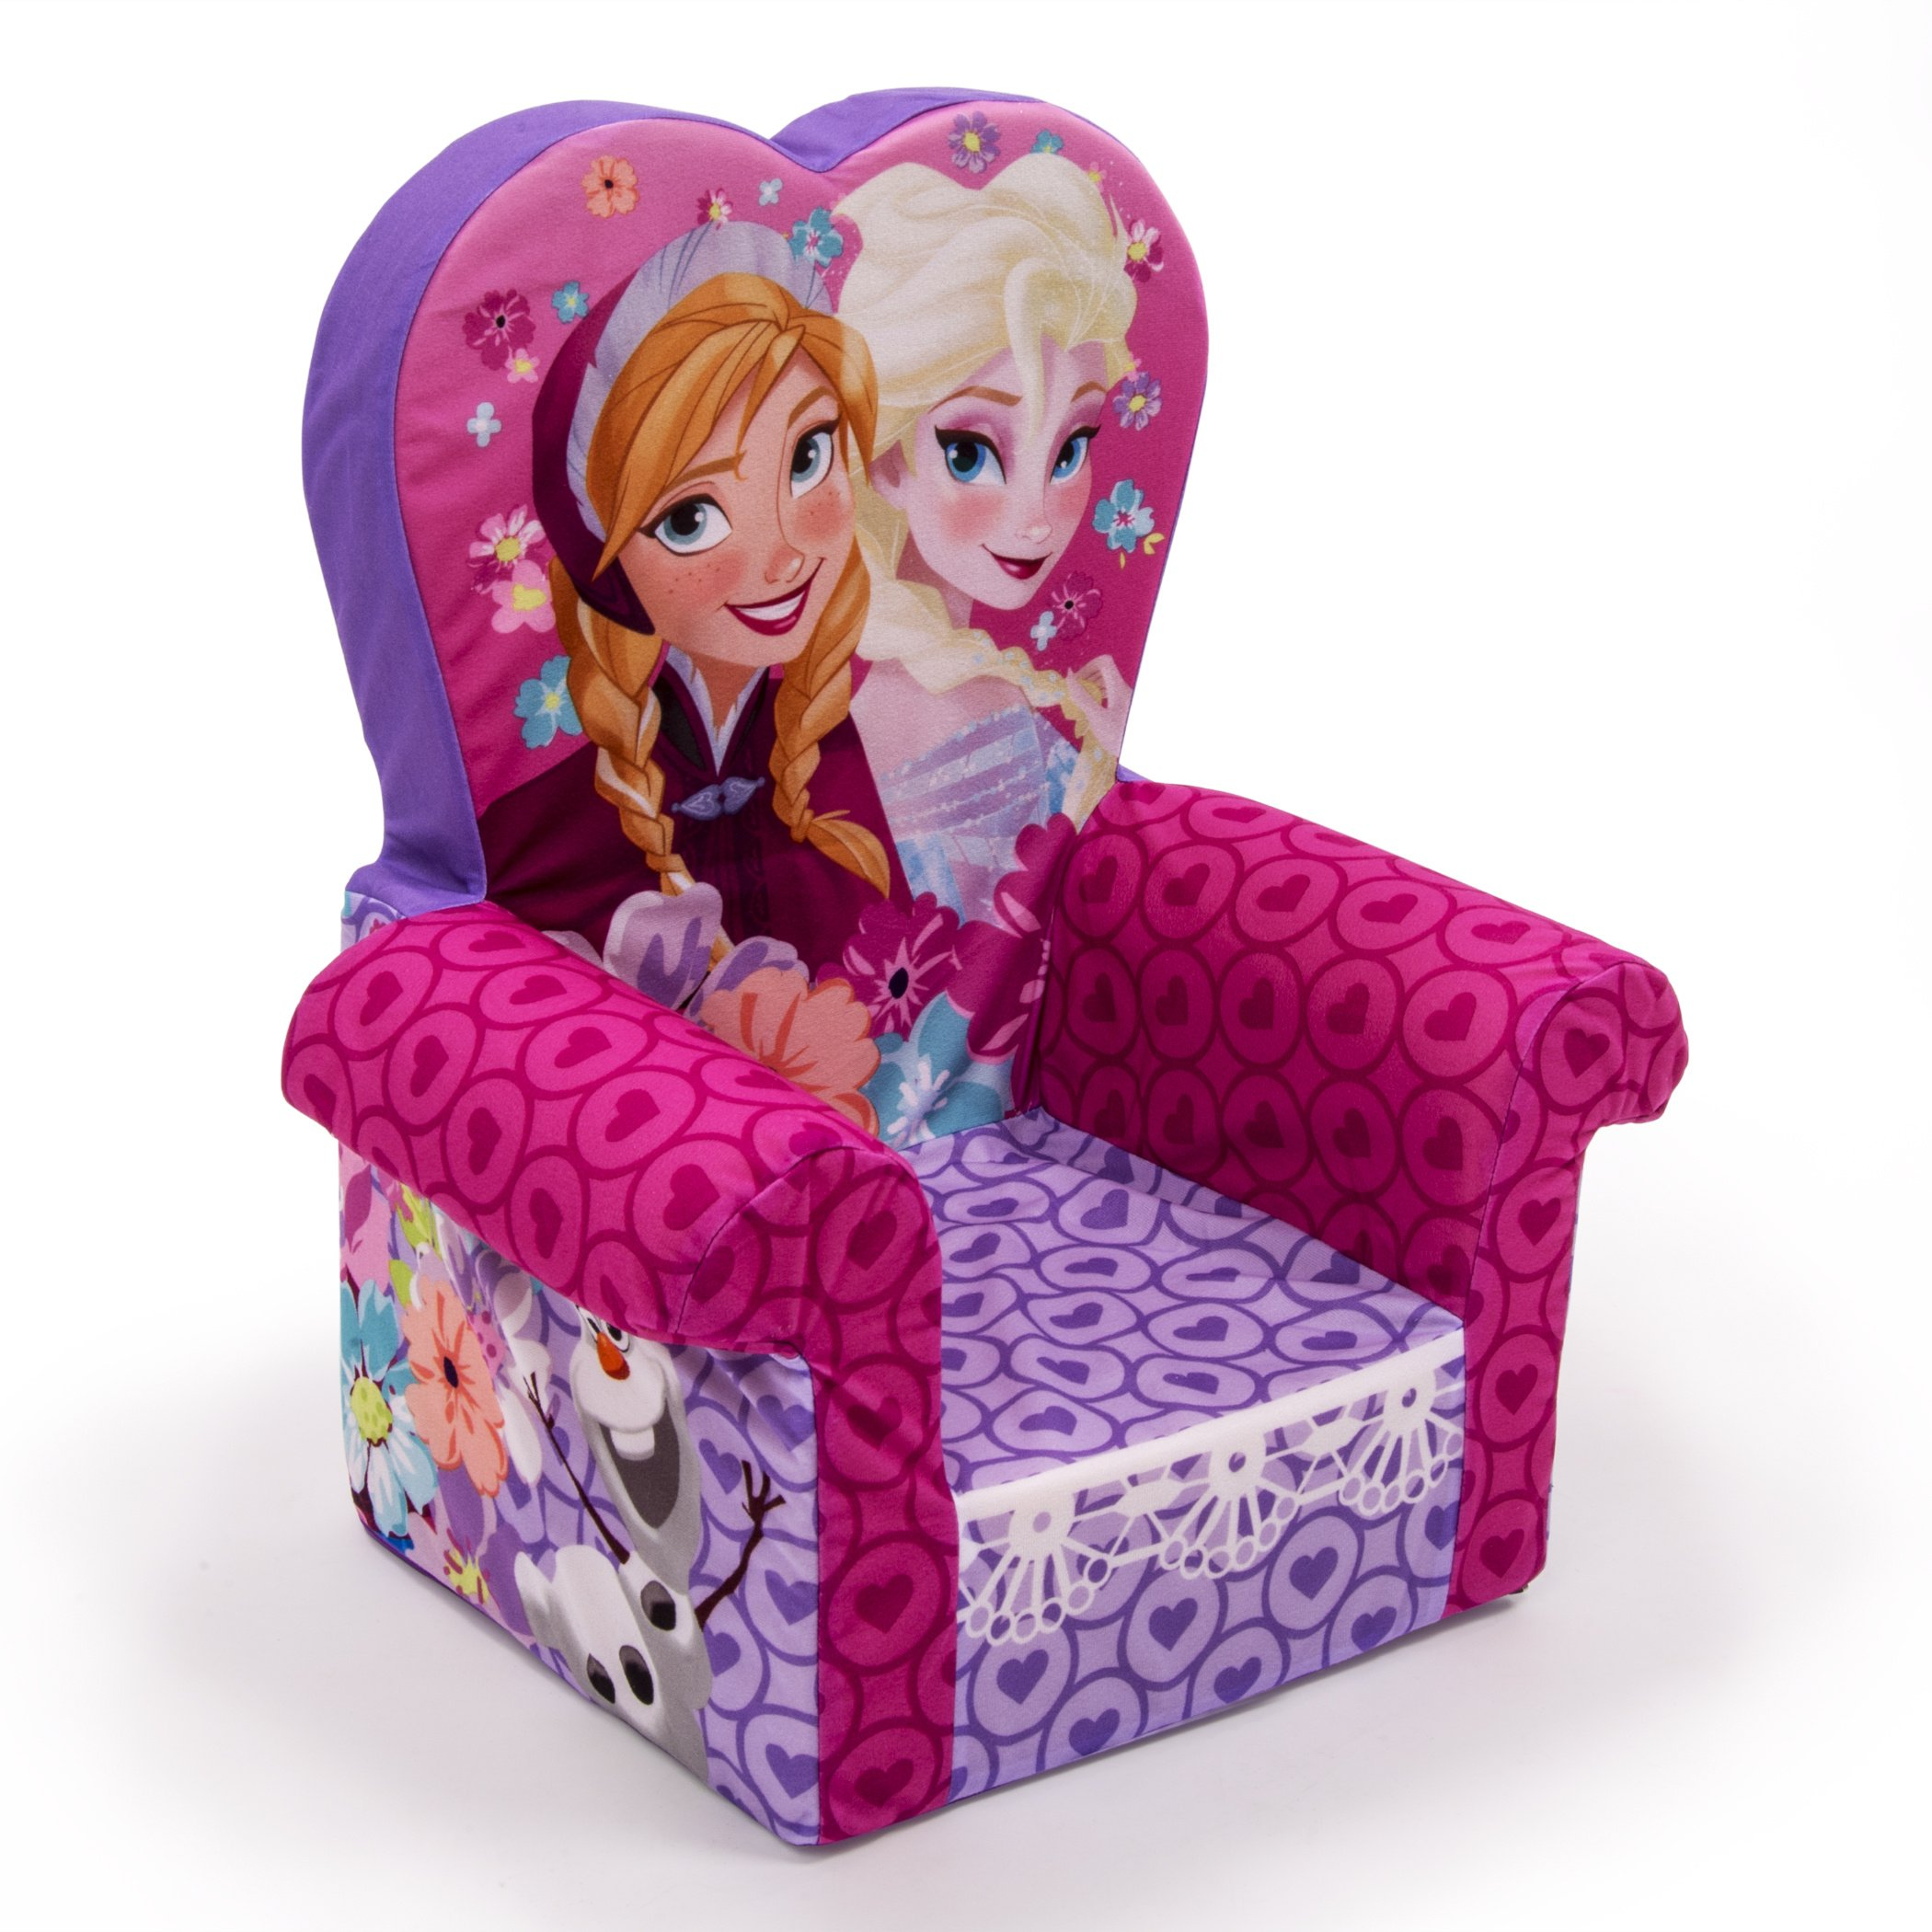 Elsa Chair Disney Sofas Chair Frozen Anna Elsa Princess Kids Girls